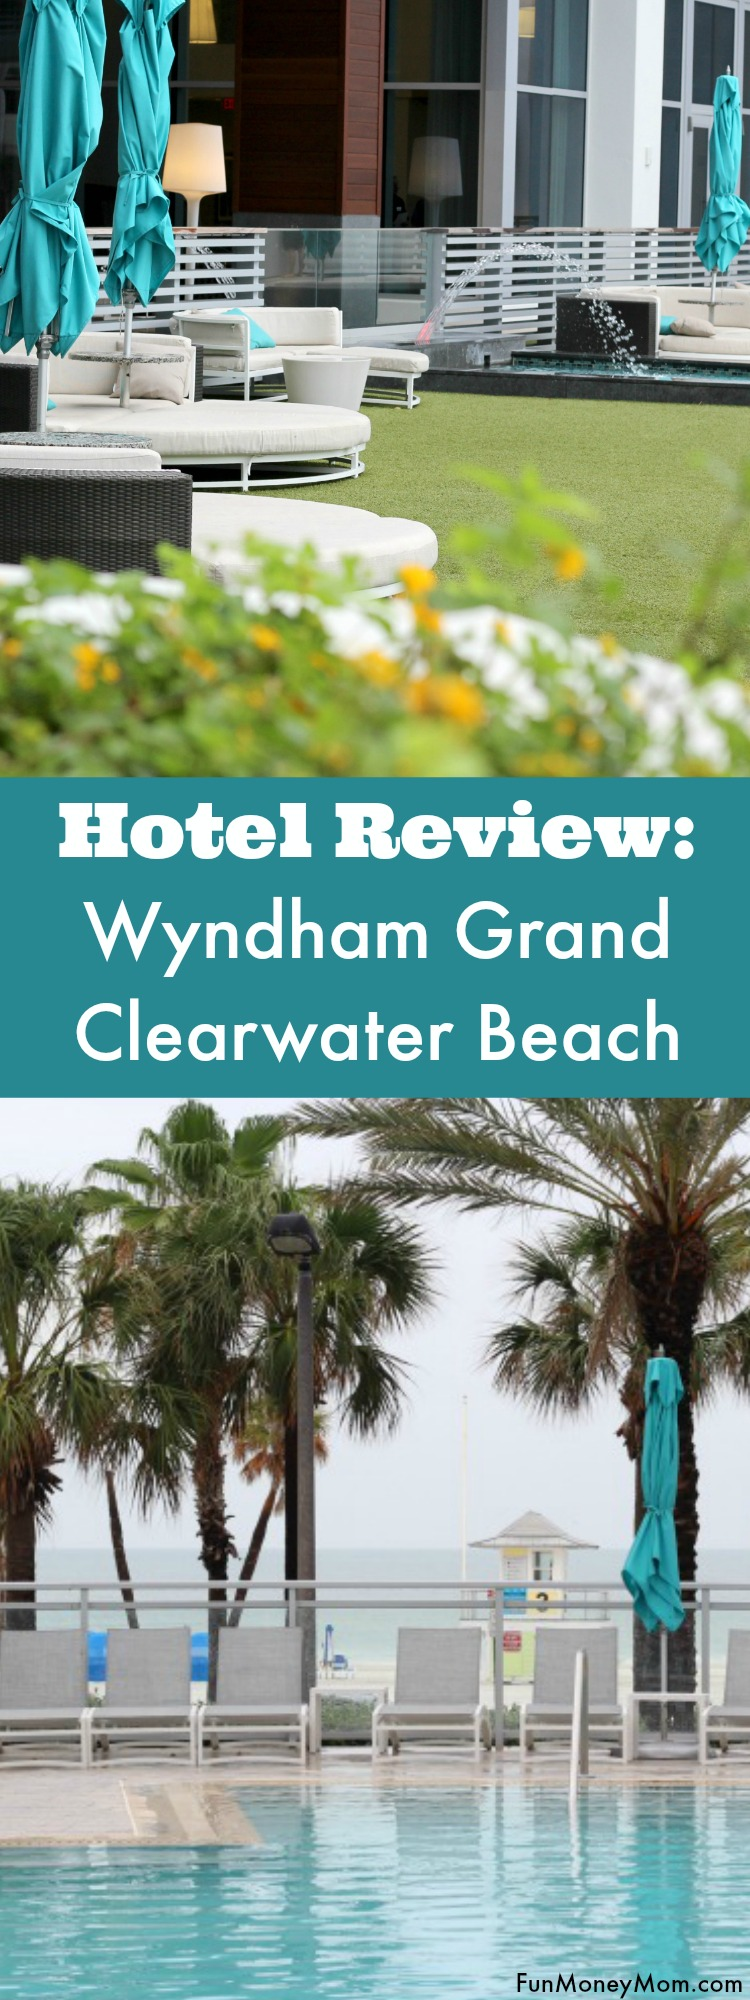 Ready to spoil yourself? Check into the Wyndham Grand Clearwater Beach, Florida